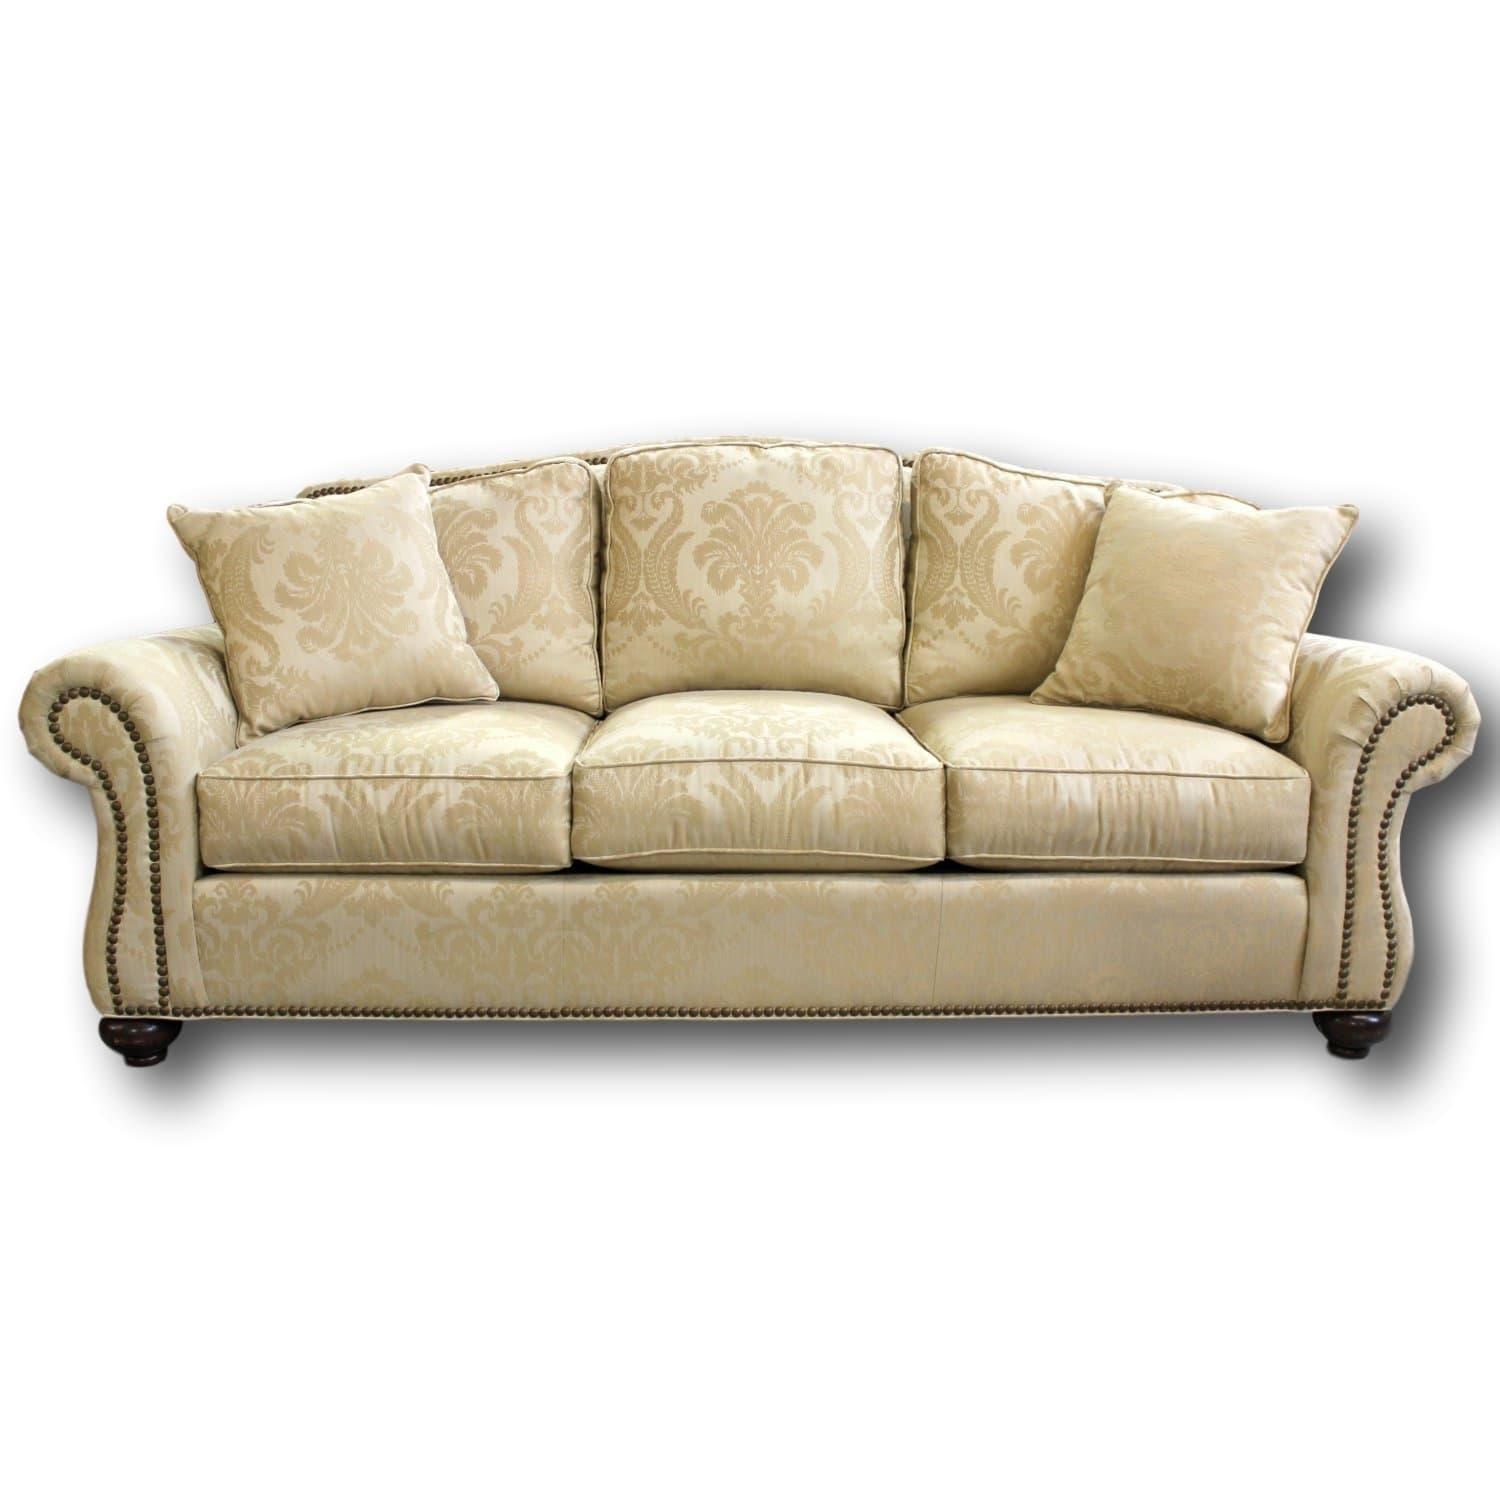 Alan White Sofa For Sale (View 17 of 20)